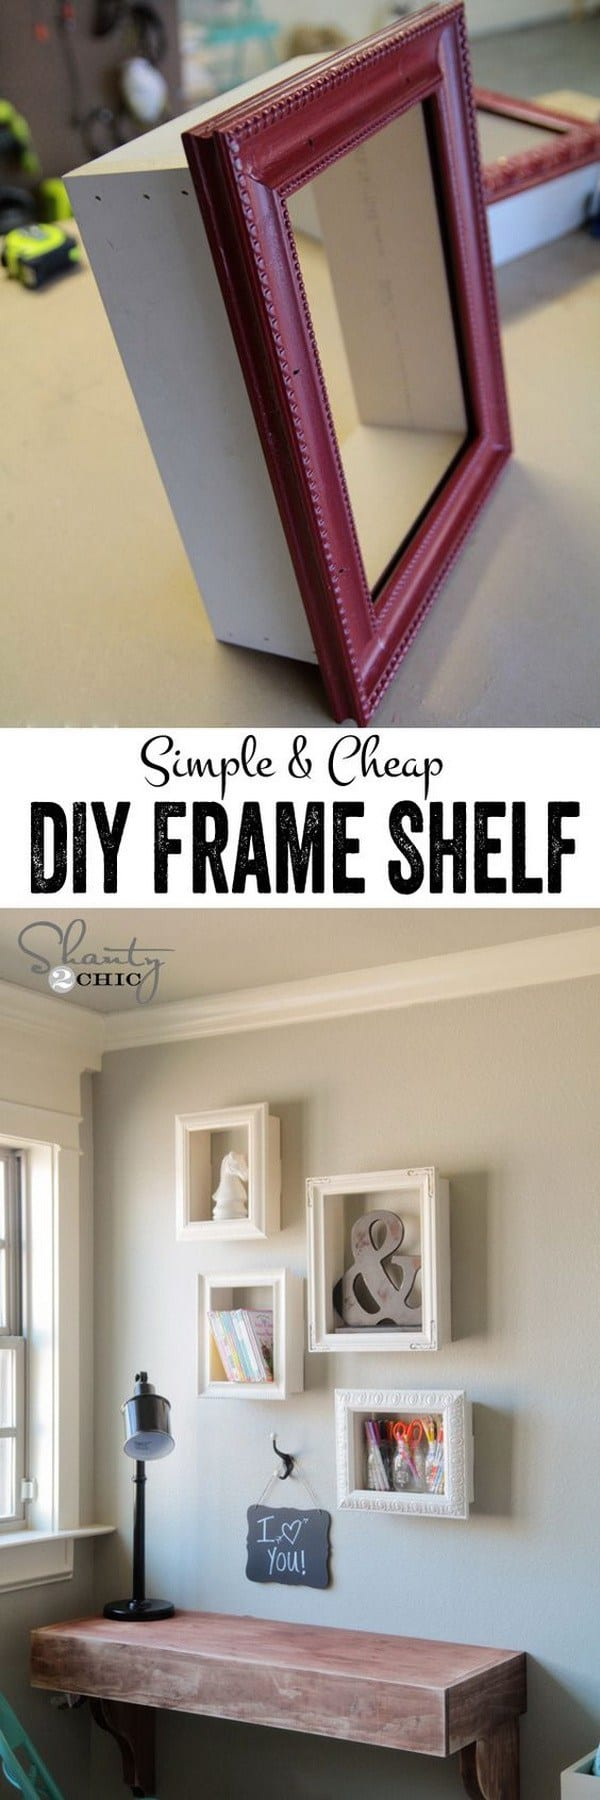 DIY shelves frame shelf